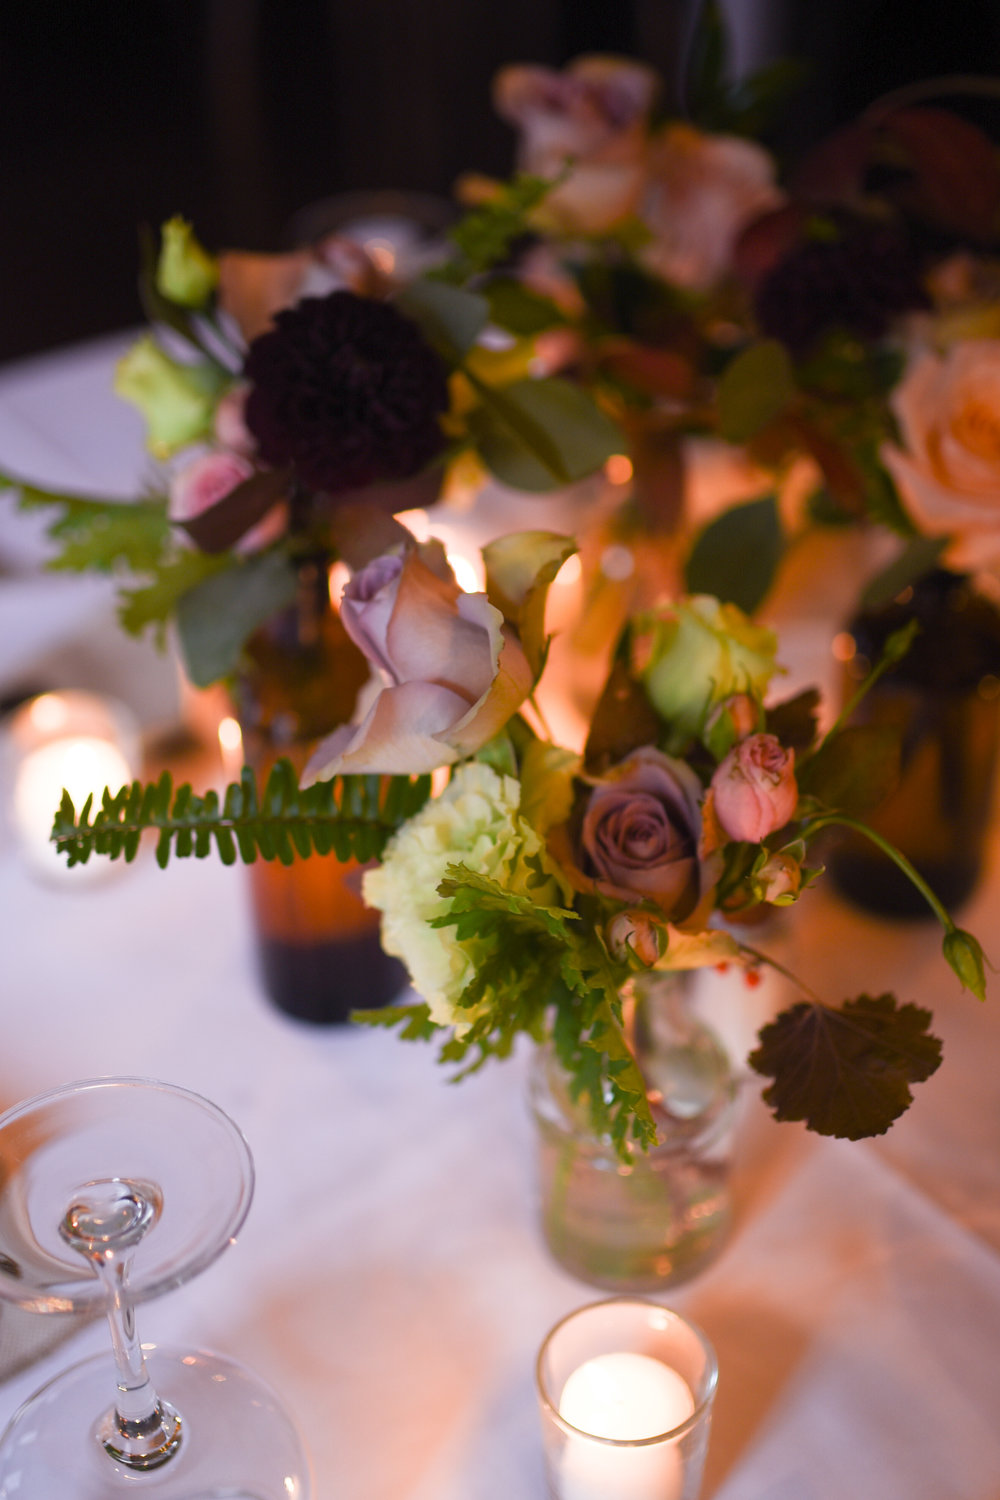 Bud vases on the tables at Orsay restaurant for this October wedding